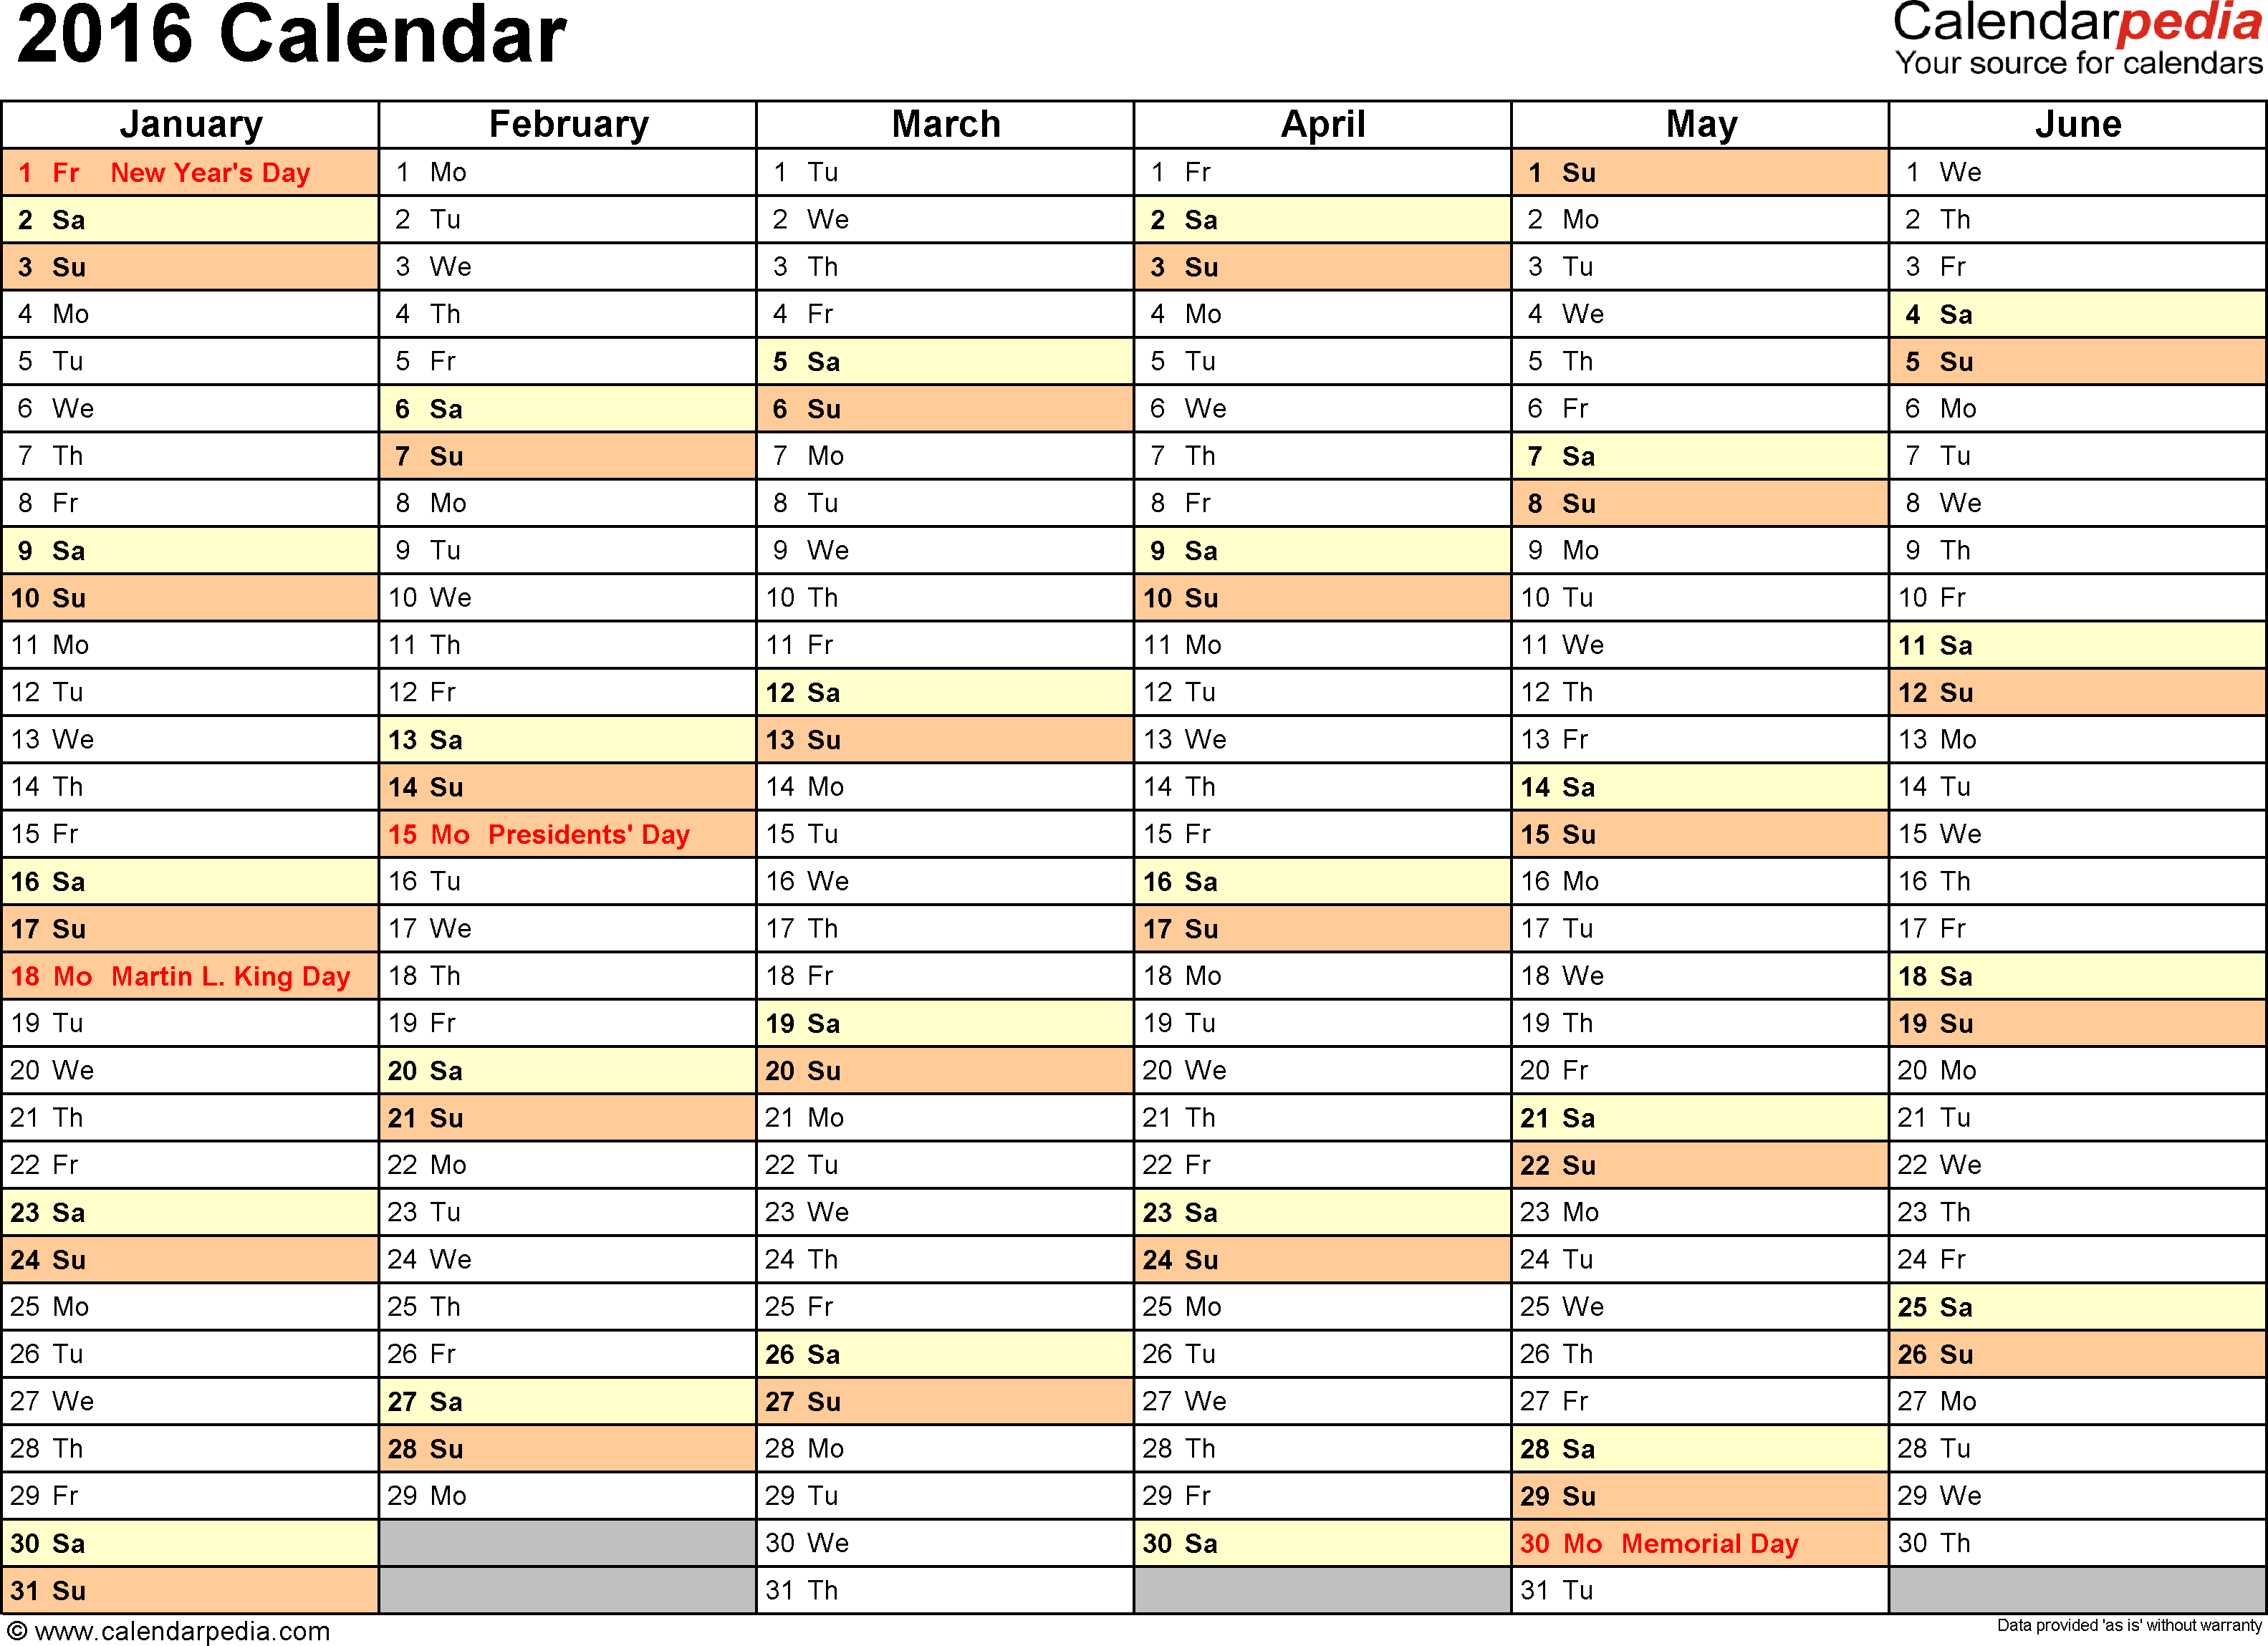 Ediblewildsus  Pleasing  Calendar  Download  Free Printable Excel Templates Xls With Great Template   Calendar For Excel Months Horizontally  Pages Landscape Orientation With Breathtaking Convert Microsoft Word To Excel Also Excel Concatenate Format In Addition Combination Chart Excel  And Excel Hero Academy As Well As Excel  Calendar Template Additionally Reorder Point Formula Excel From Calendarpediacom With Ediblewildsus  Great  Calendar  Download  Free Printable Excel Templates Xls With Breathtaking Template   Calendar For Excel Months Horizontally  Pages Landscape Orientation And Pleasing Convert Microsoft Word To Excel Also Excel Concatenate Format In Addition Combination Chart Excel  From Calendarpediacom